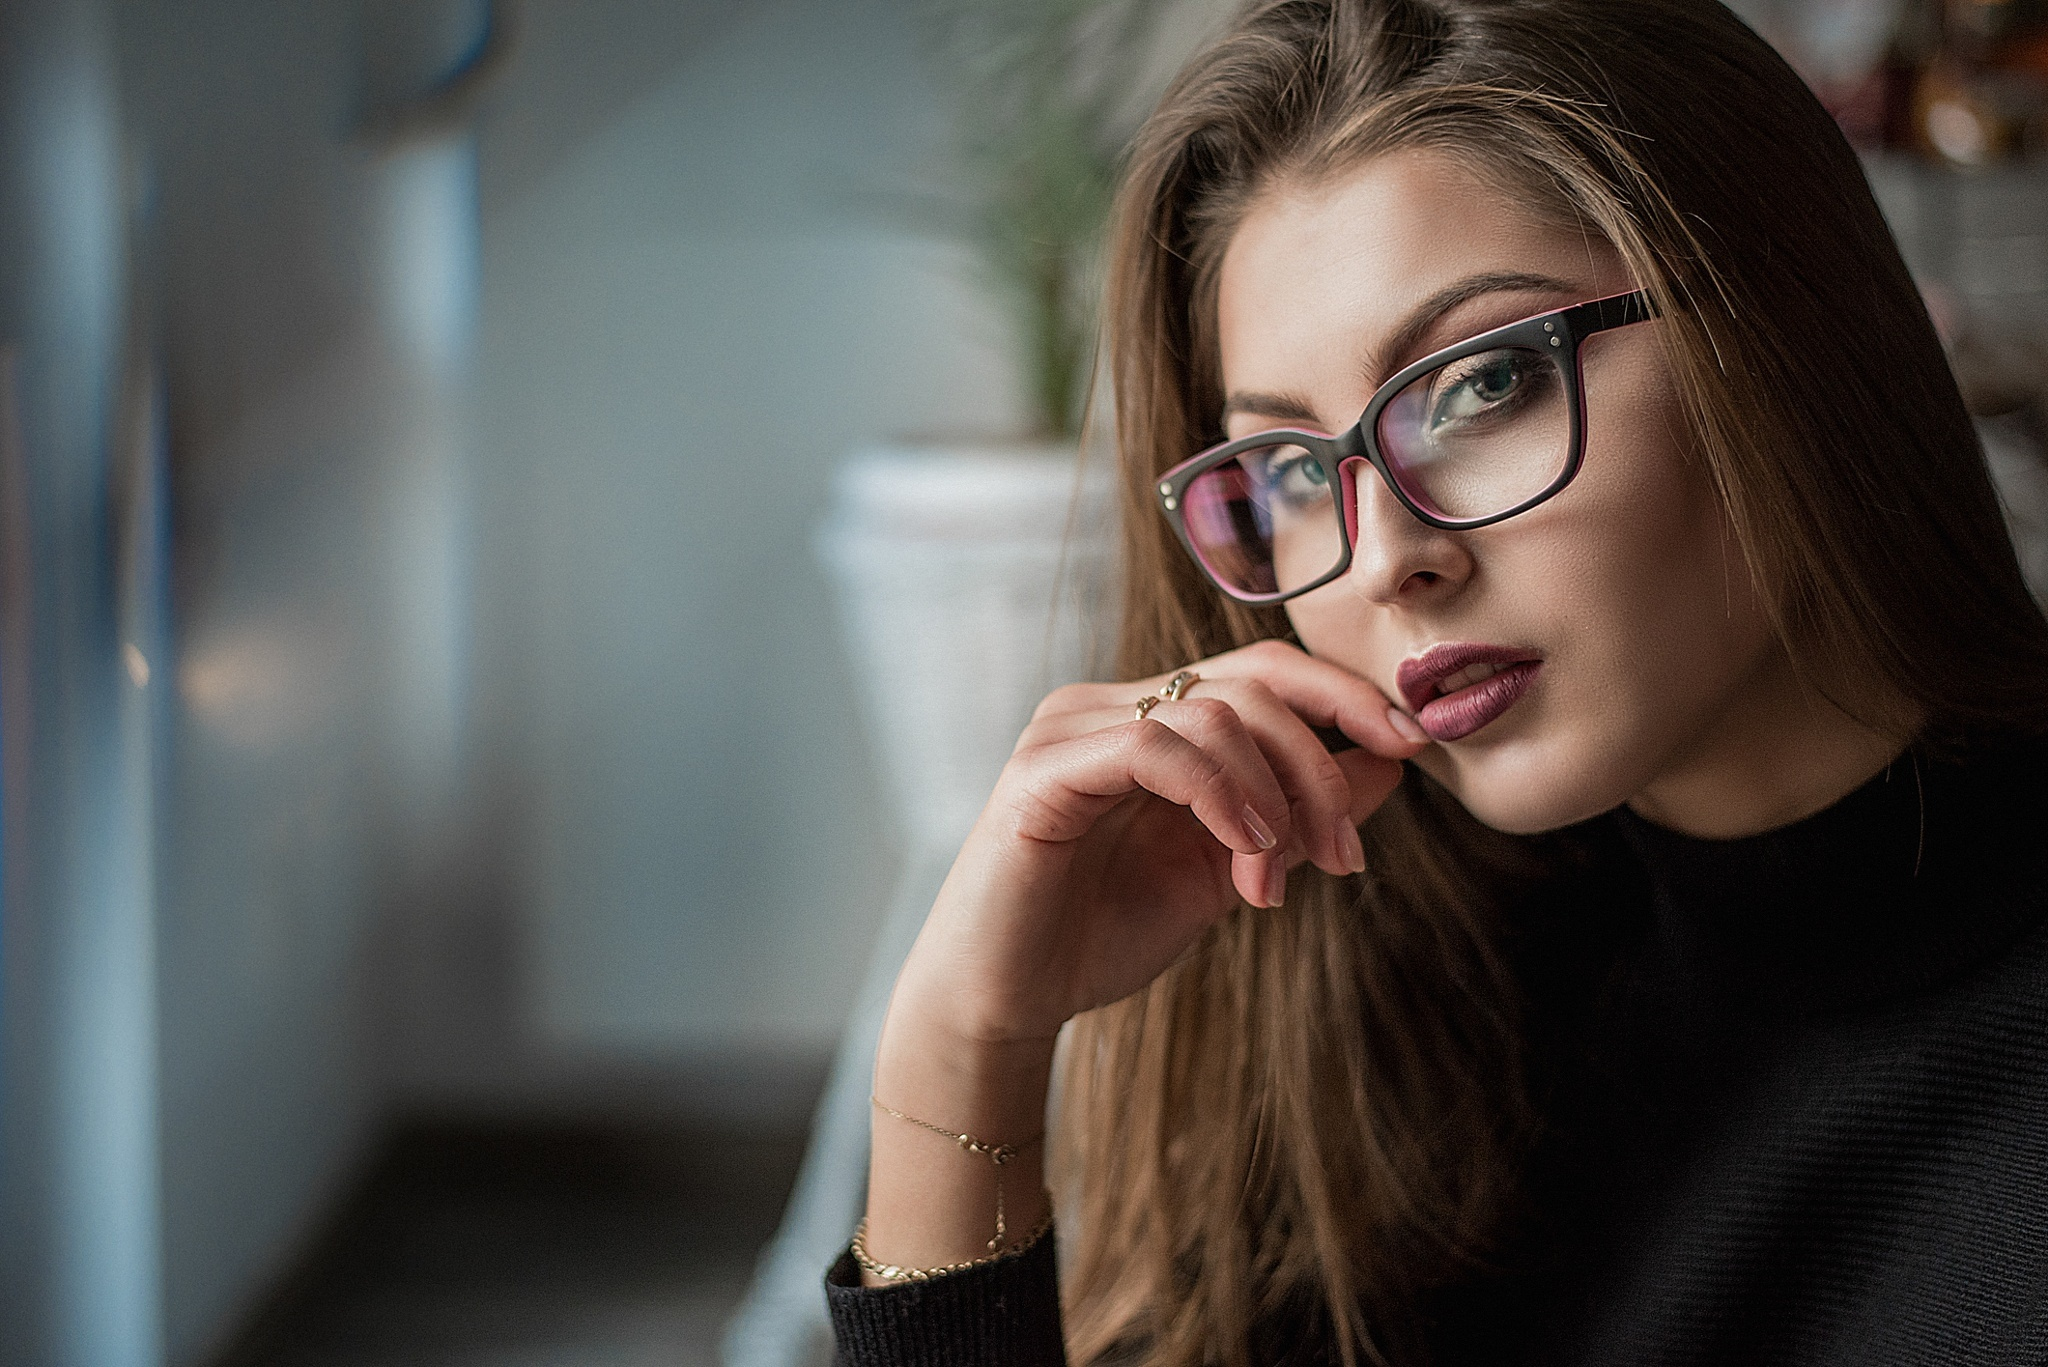 Do you agree that glasses make girls more